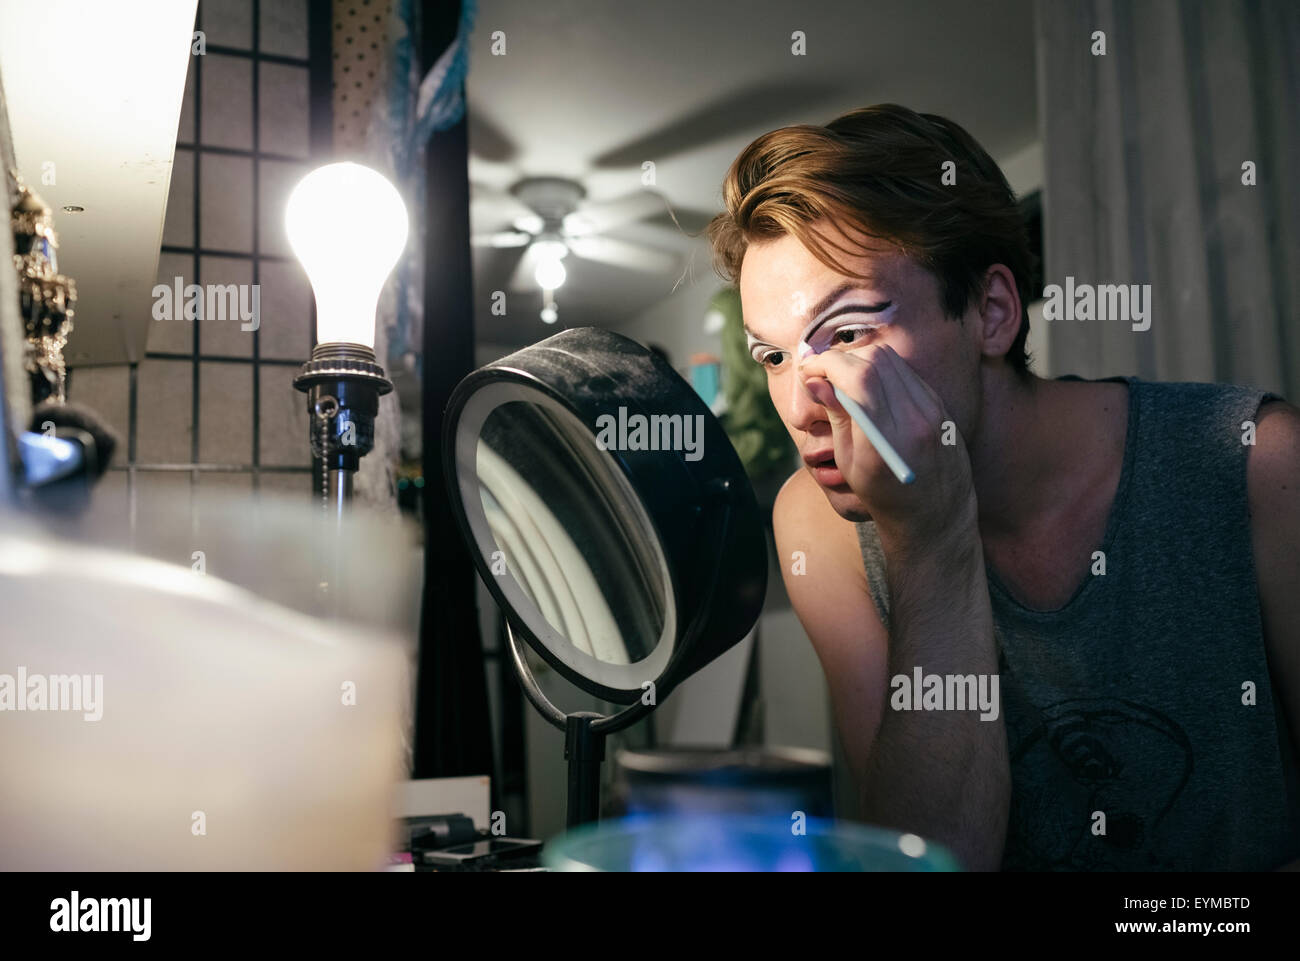 Male drag queen putting on make up and dressing up in preparation for a performance Stock Photo